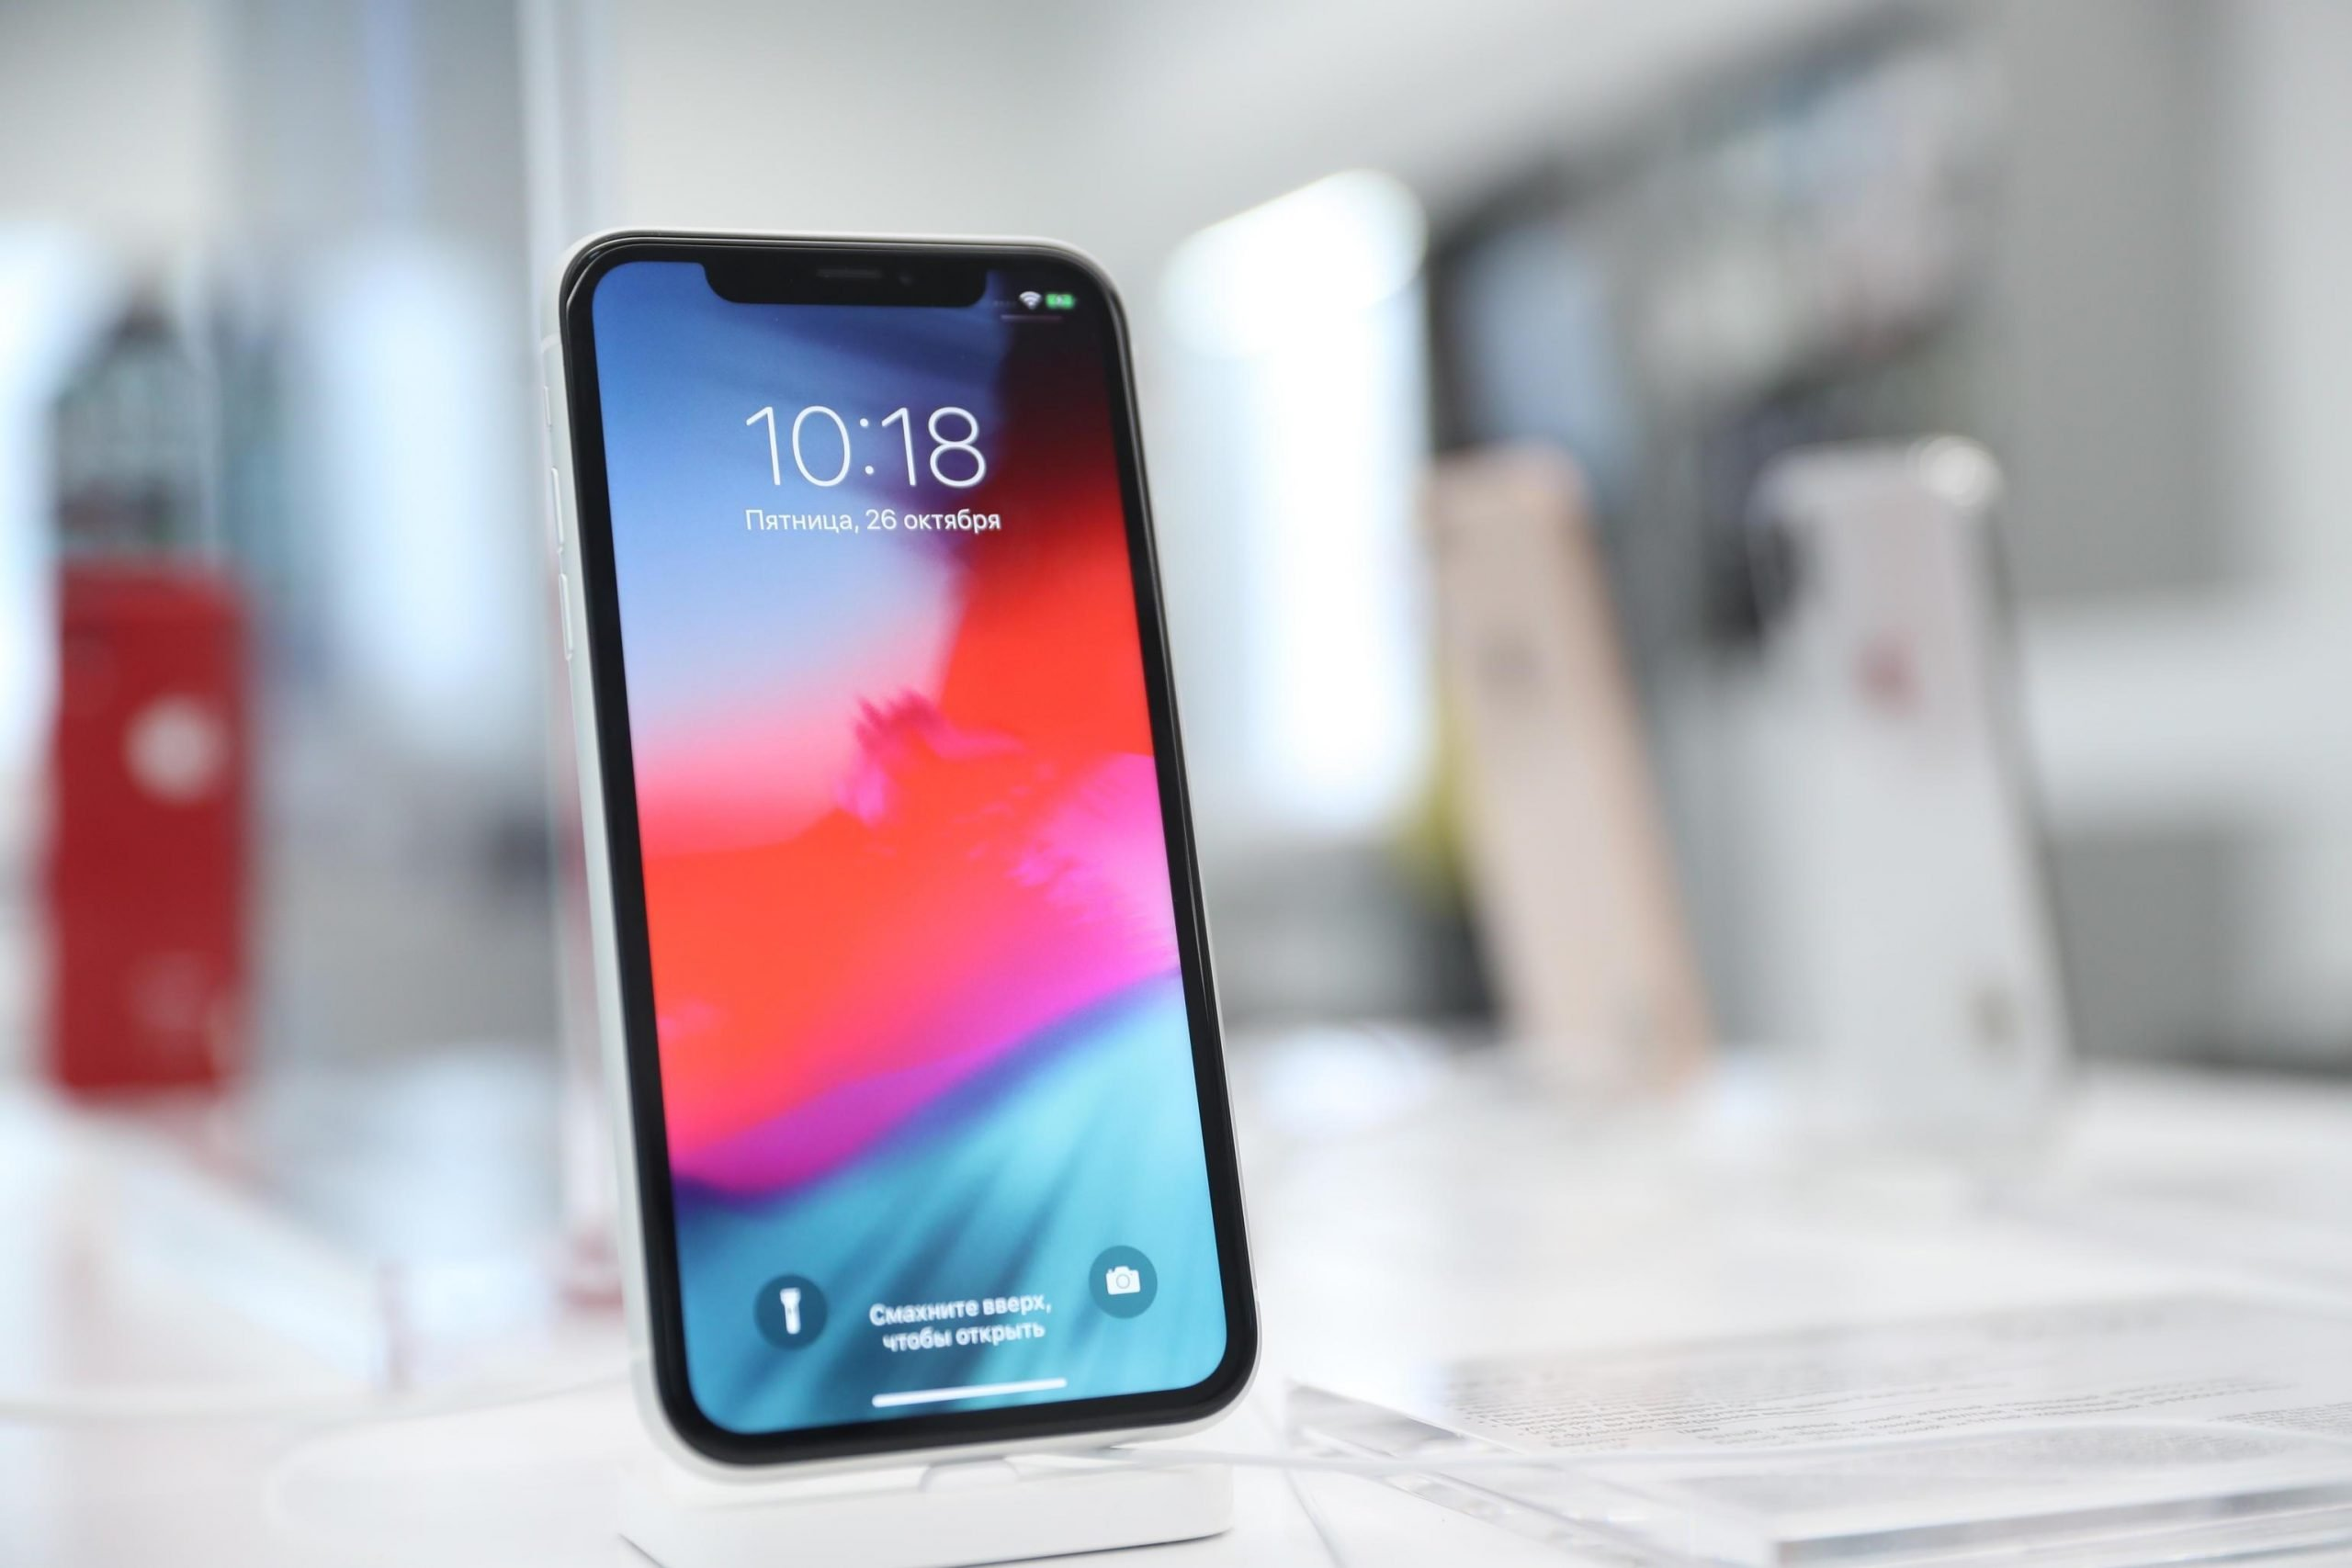 Buy iPhone XR on sale with an interesting discount